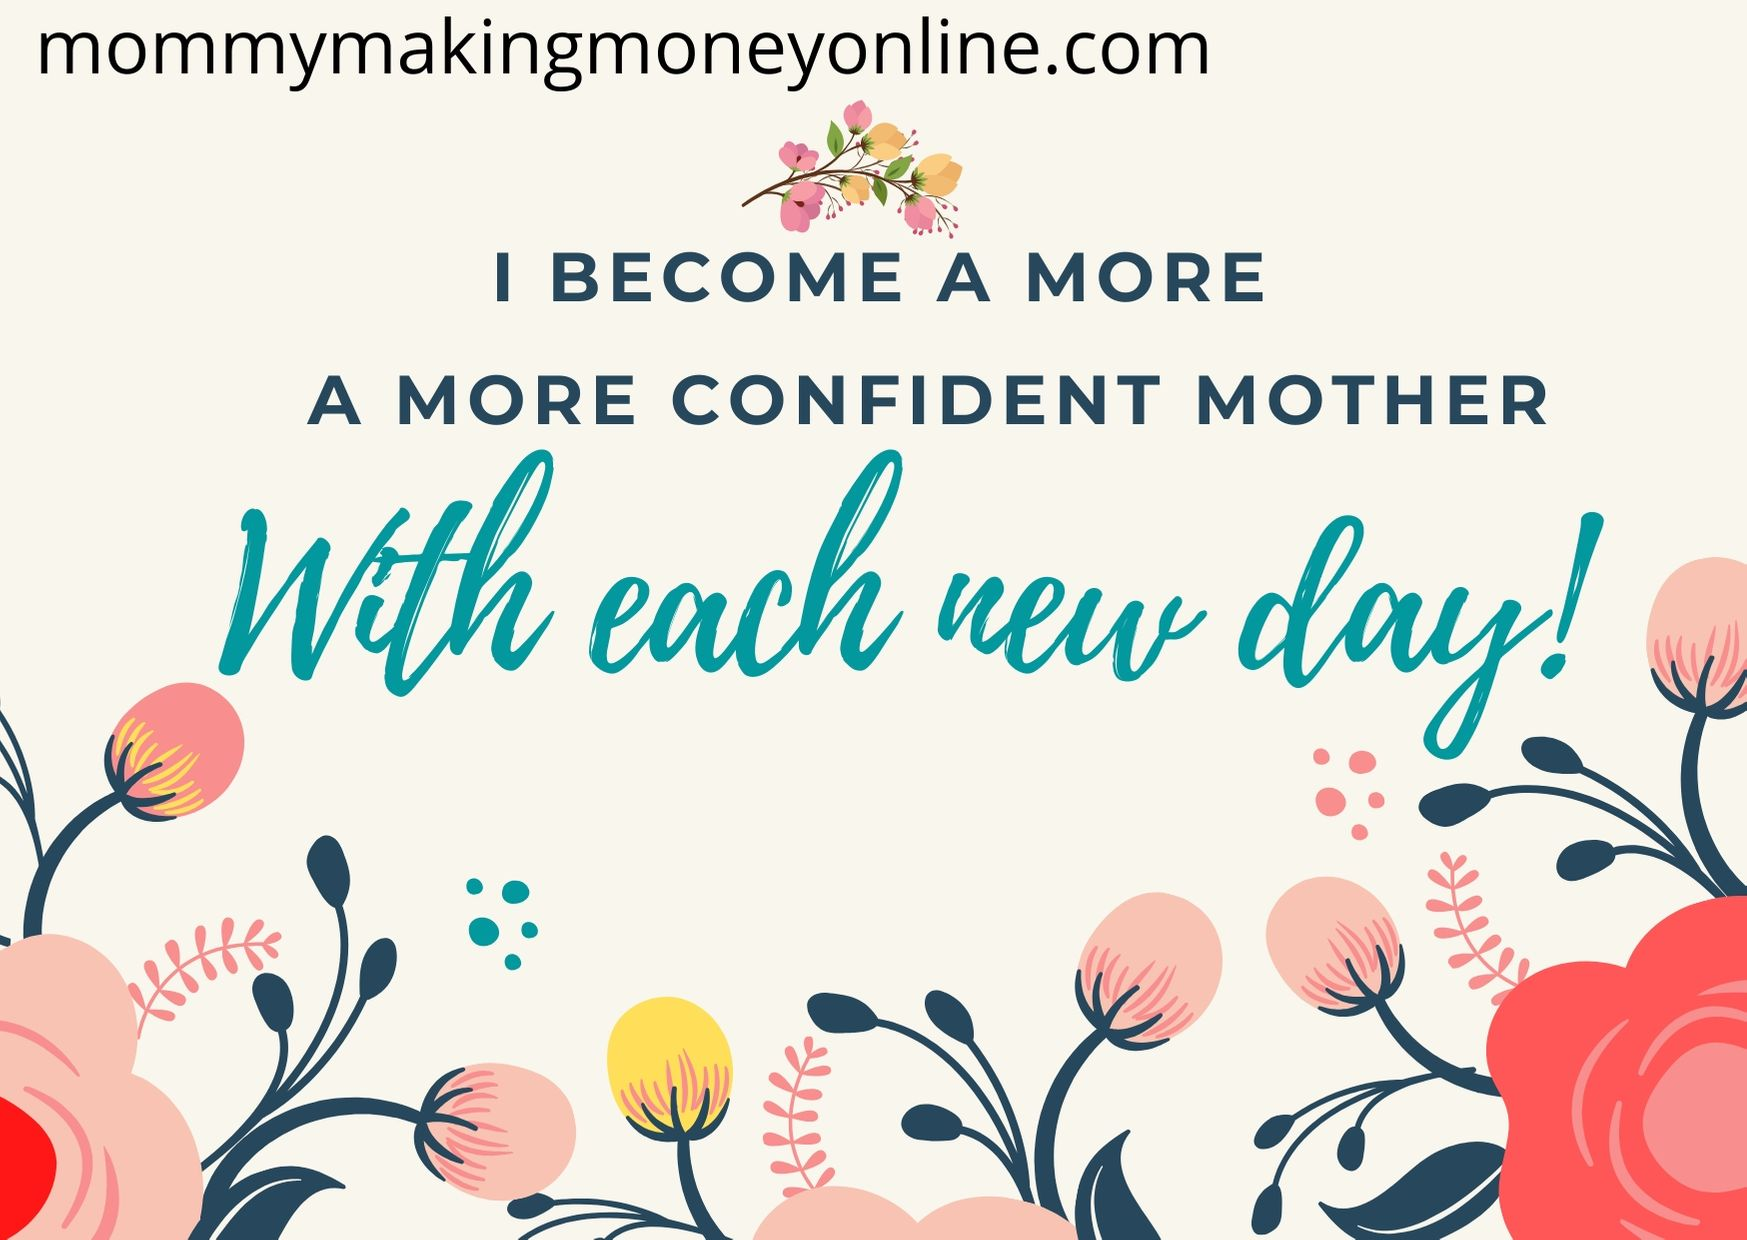 Here are a few affirmation cards for moms! If you are a mom who feels overwhelmed, try using some of these positive affirmations for moms! Having a positive self-dialogue is a huge part of self-care for moms. Learn how to use positive affirmations to liberate yourself from overwhelming in the post that lists 31 positive affirmations for moms. #momlife #motherhood #selfcare #positiveaffirmations